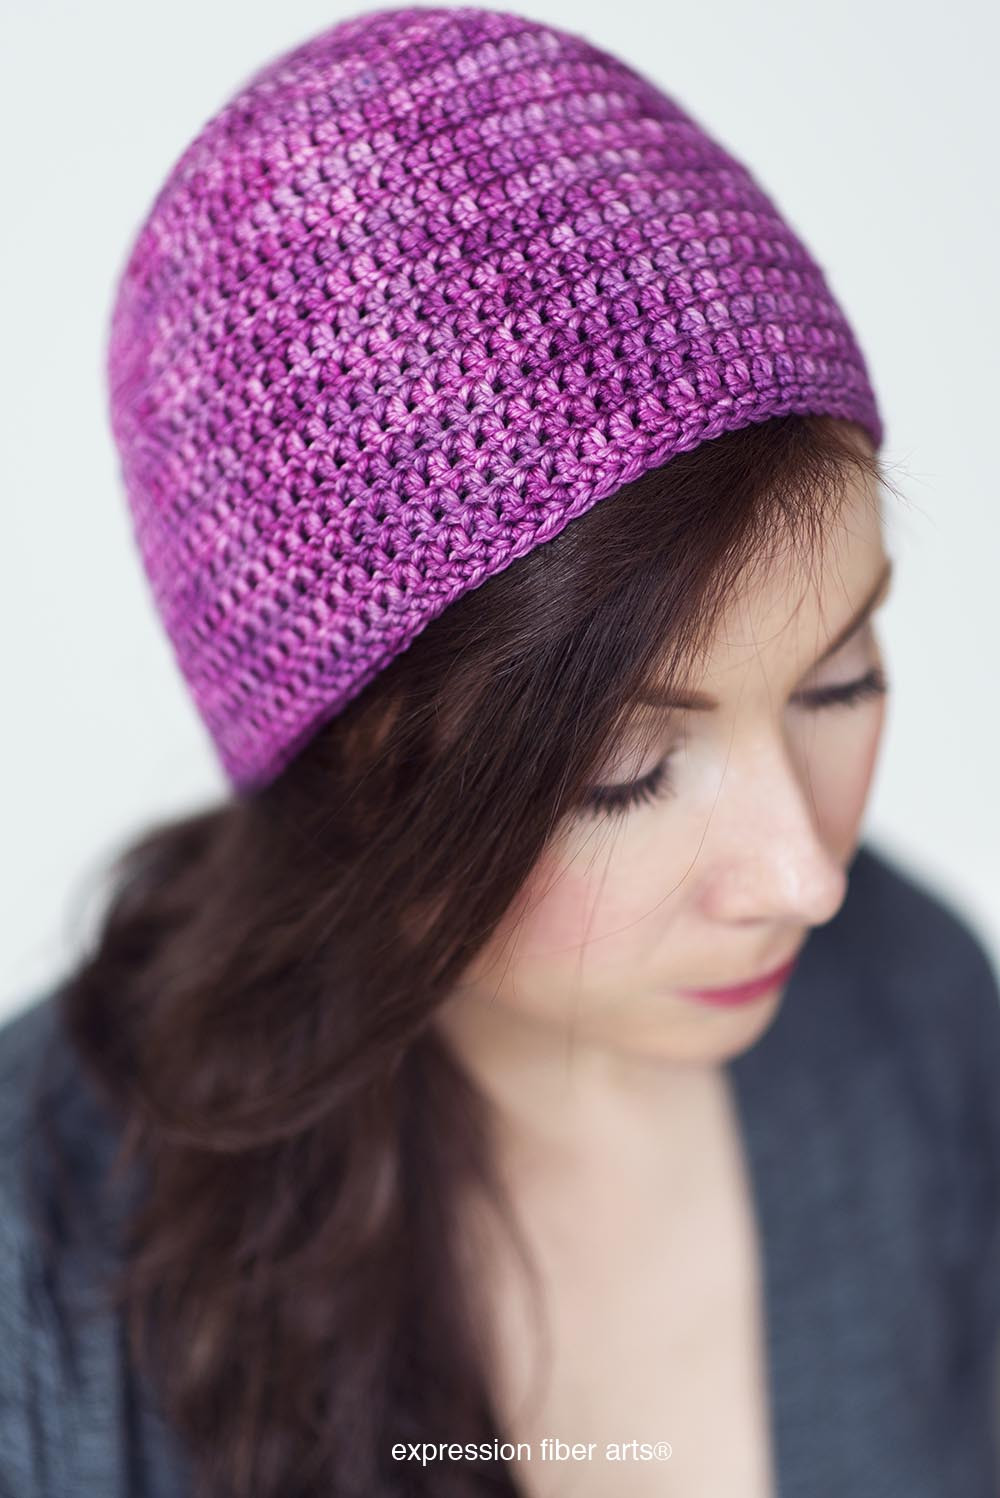 Crochet Beanie Fresh How to Crochet A Beanie – for Beginners – Expression Fiber Of Amazing 44 Images Crochet Beanie